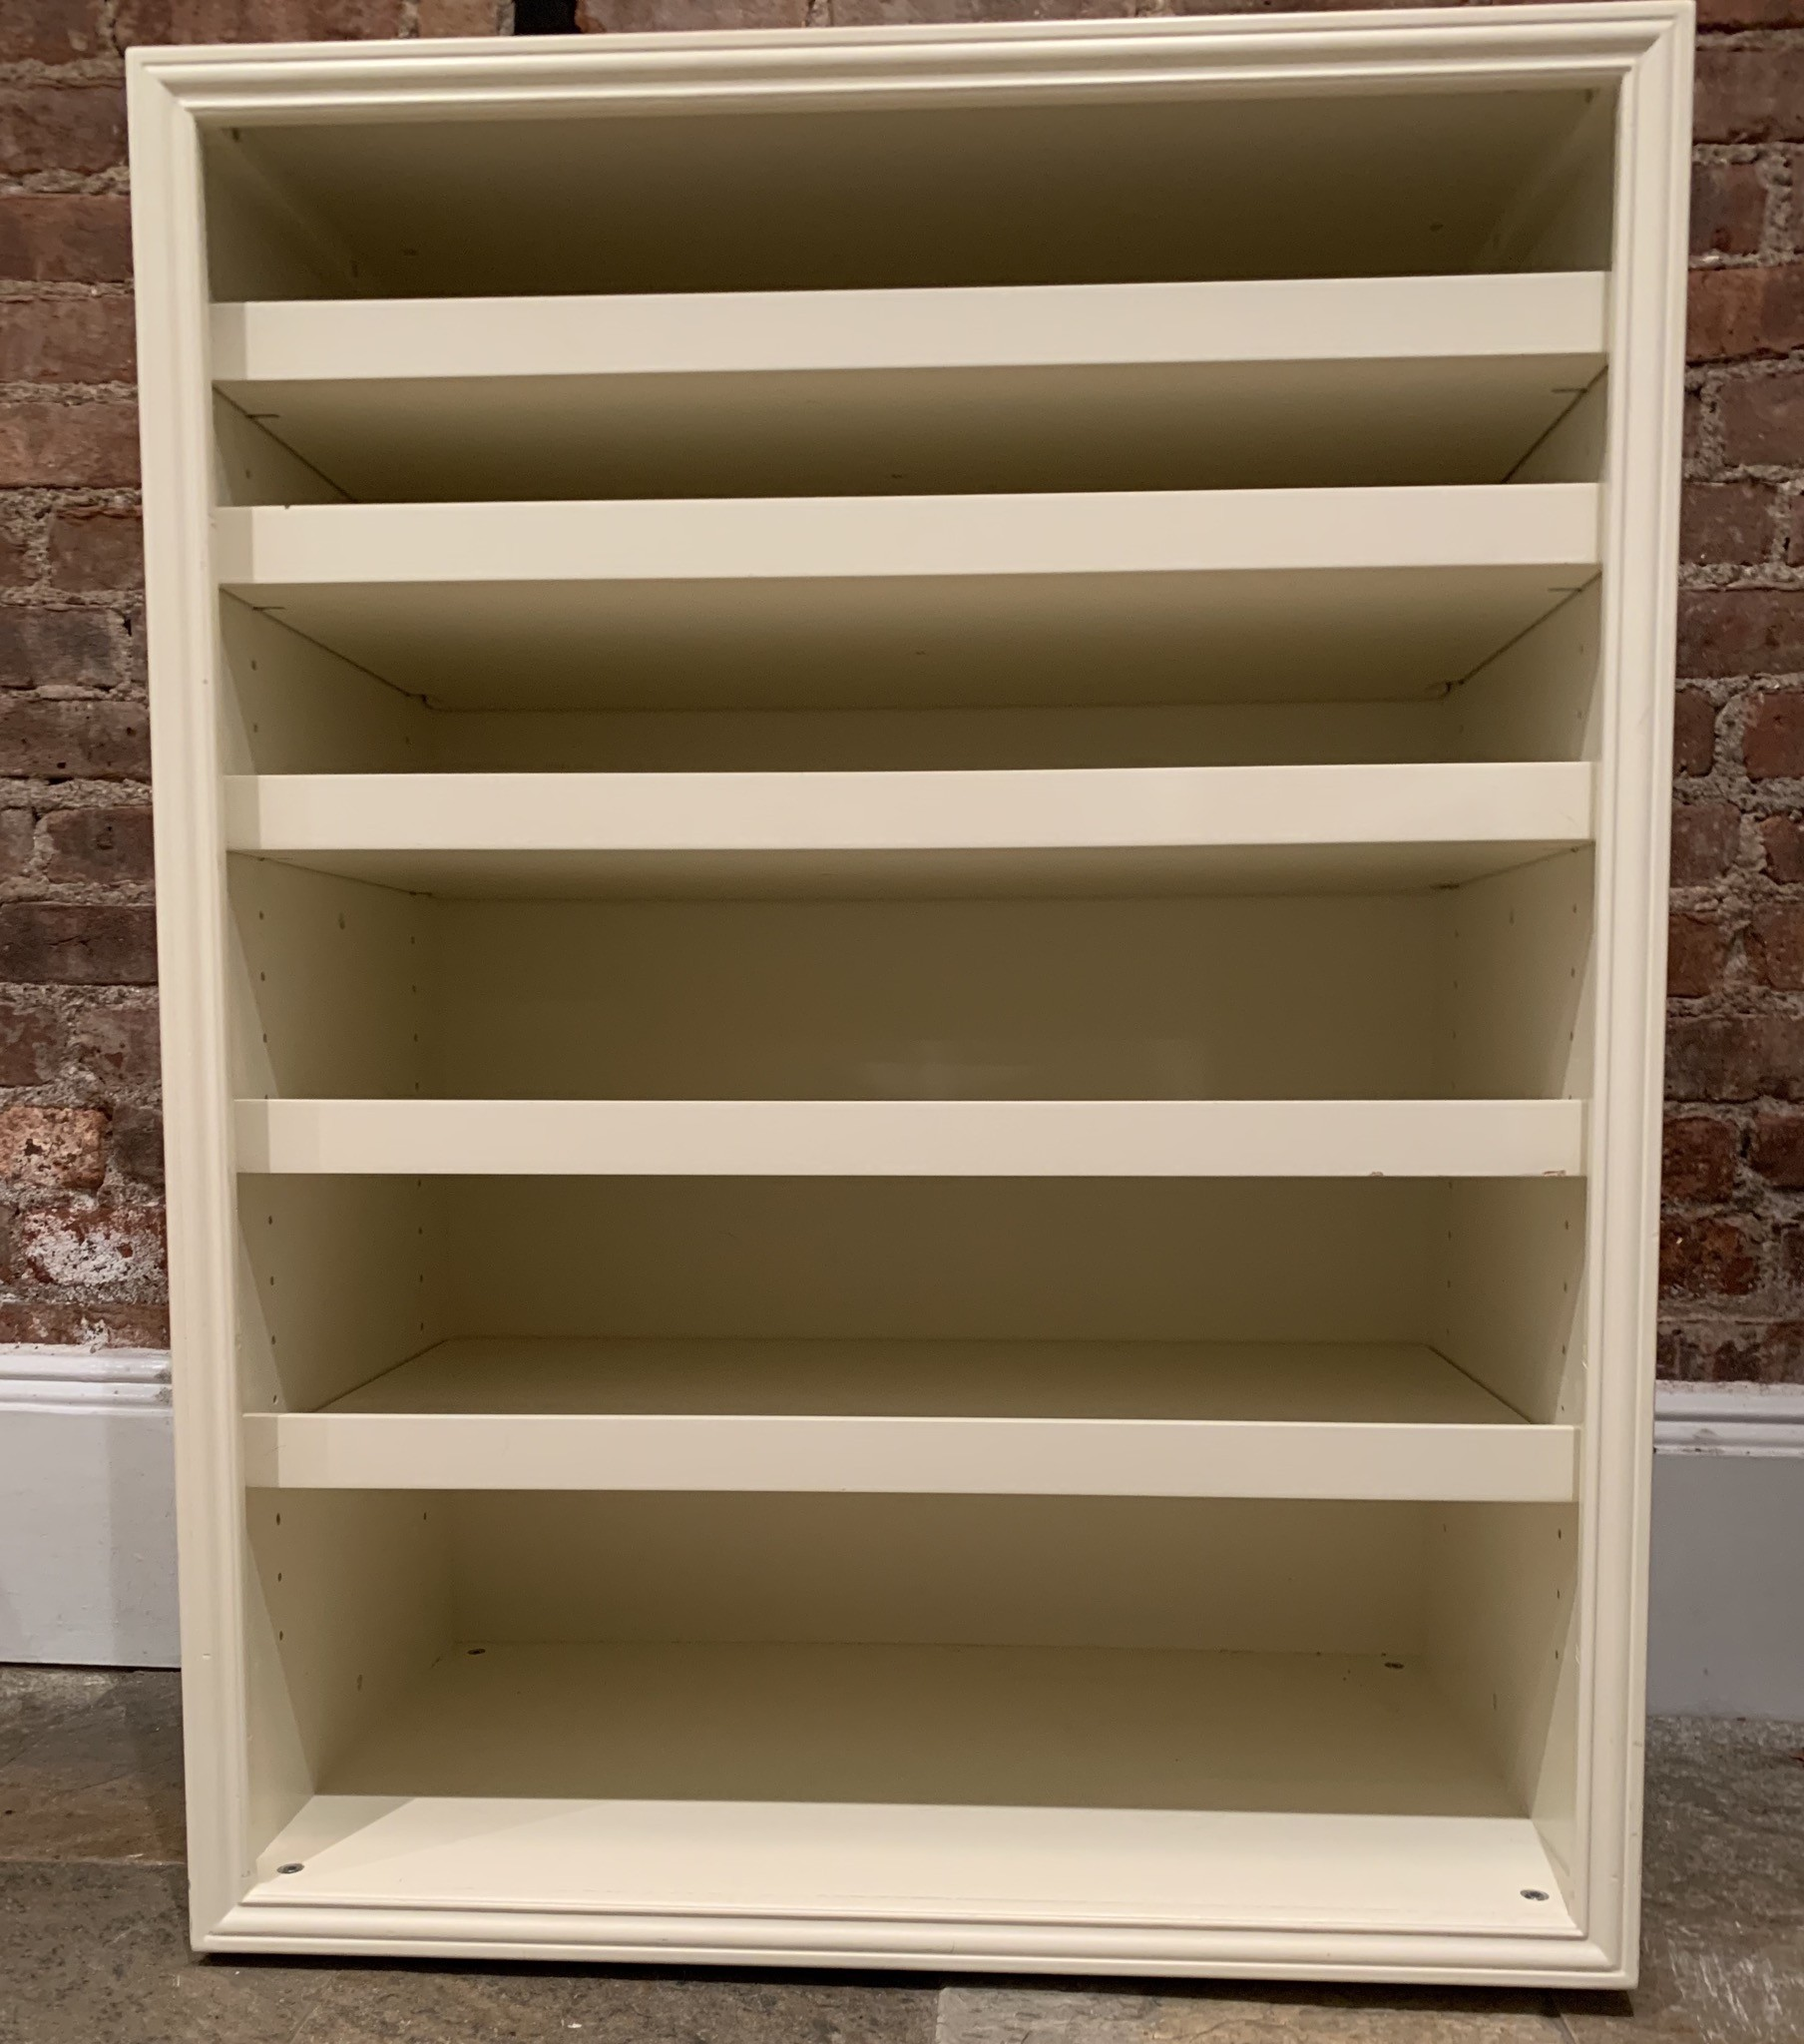 Pottery Barn Sutton Wide Cabinet/Shoe Rack